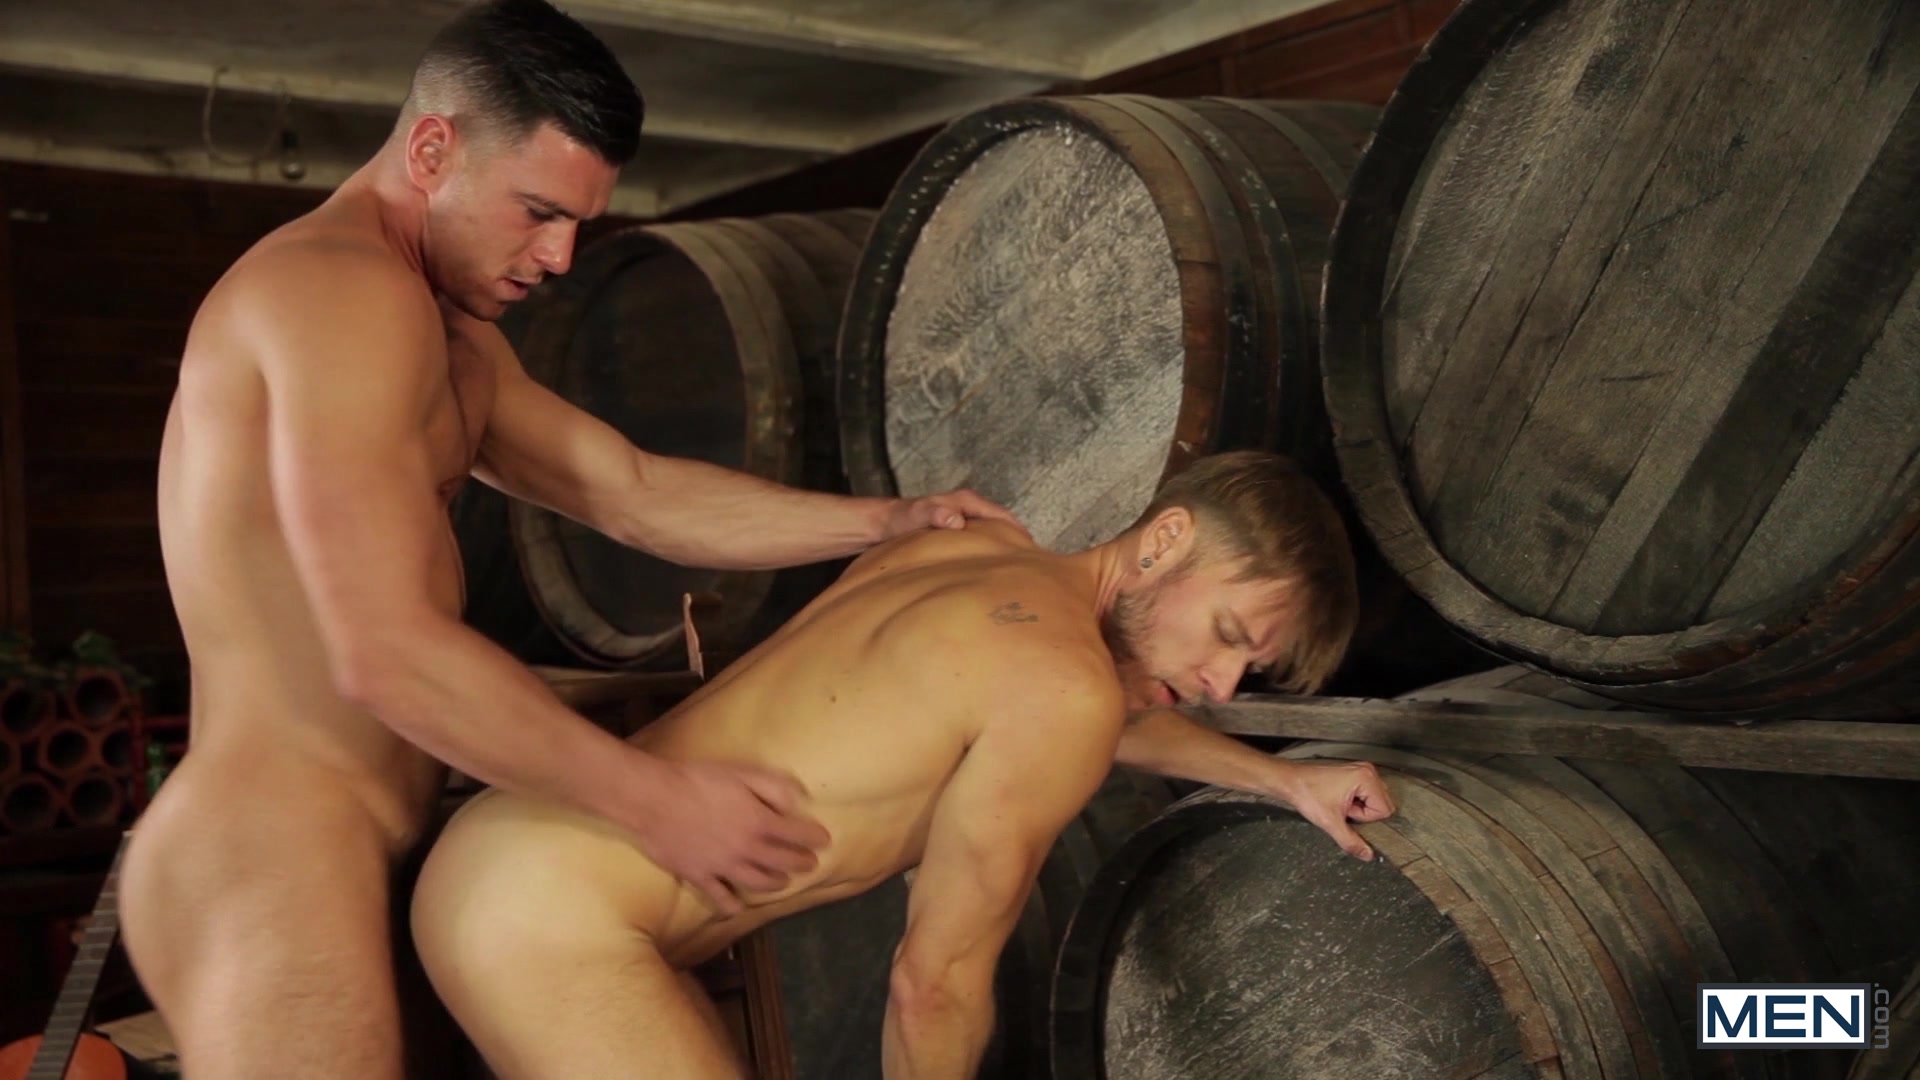 Watch Forbidden – Matt Anders And Paddy O'brian – Mouk – Men Of Uk (MEN.COM) Gay Porn Tube Videos Gifs And Free XXX HD Sex Movies Photos Online